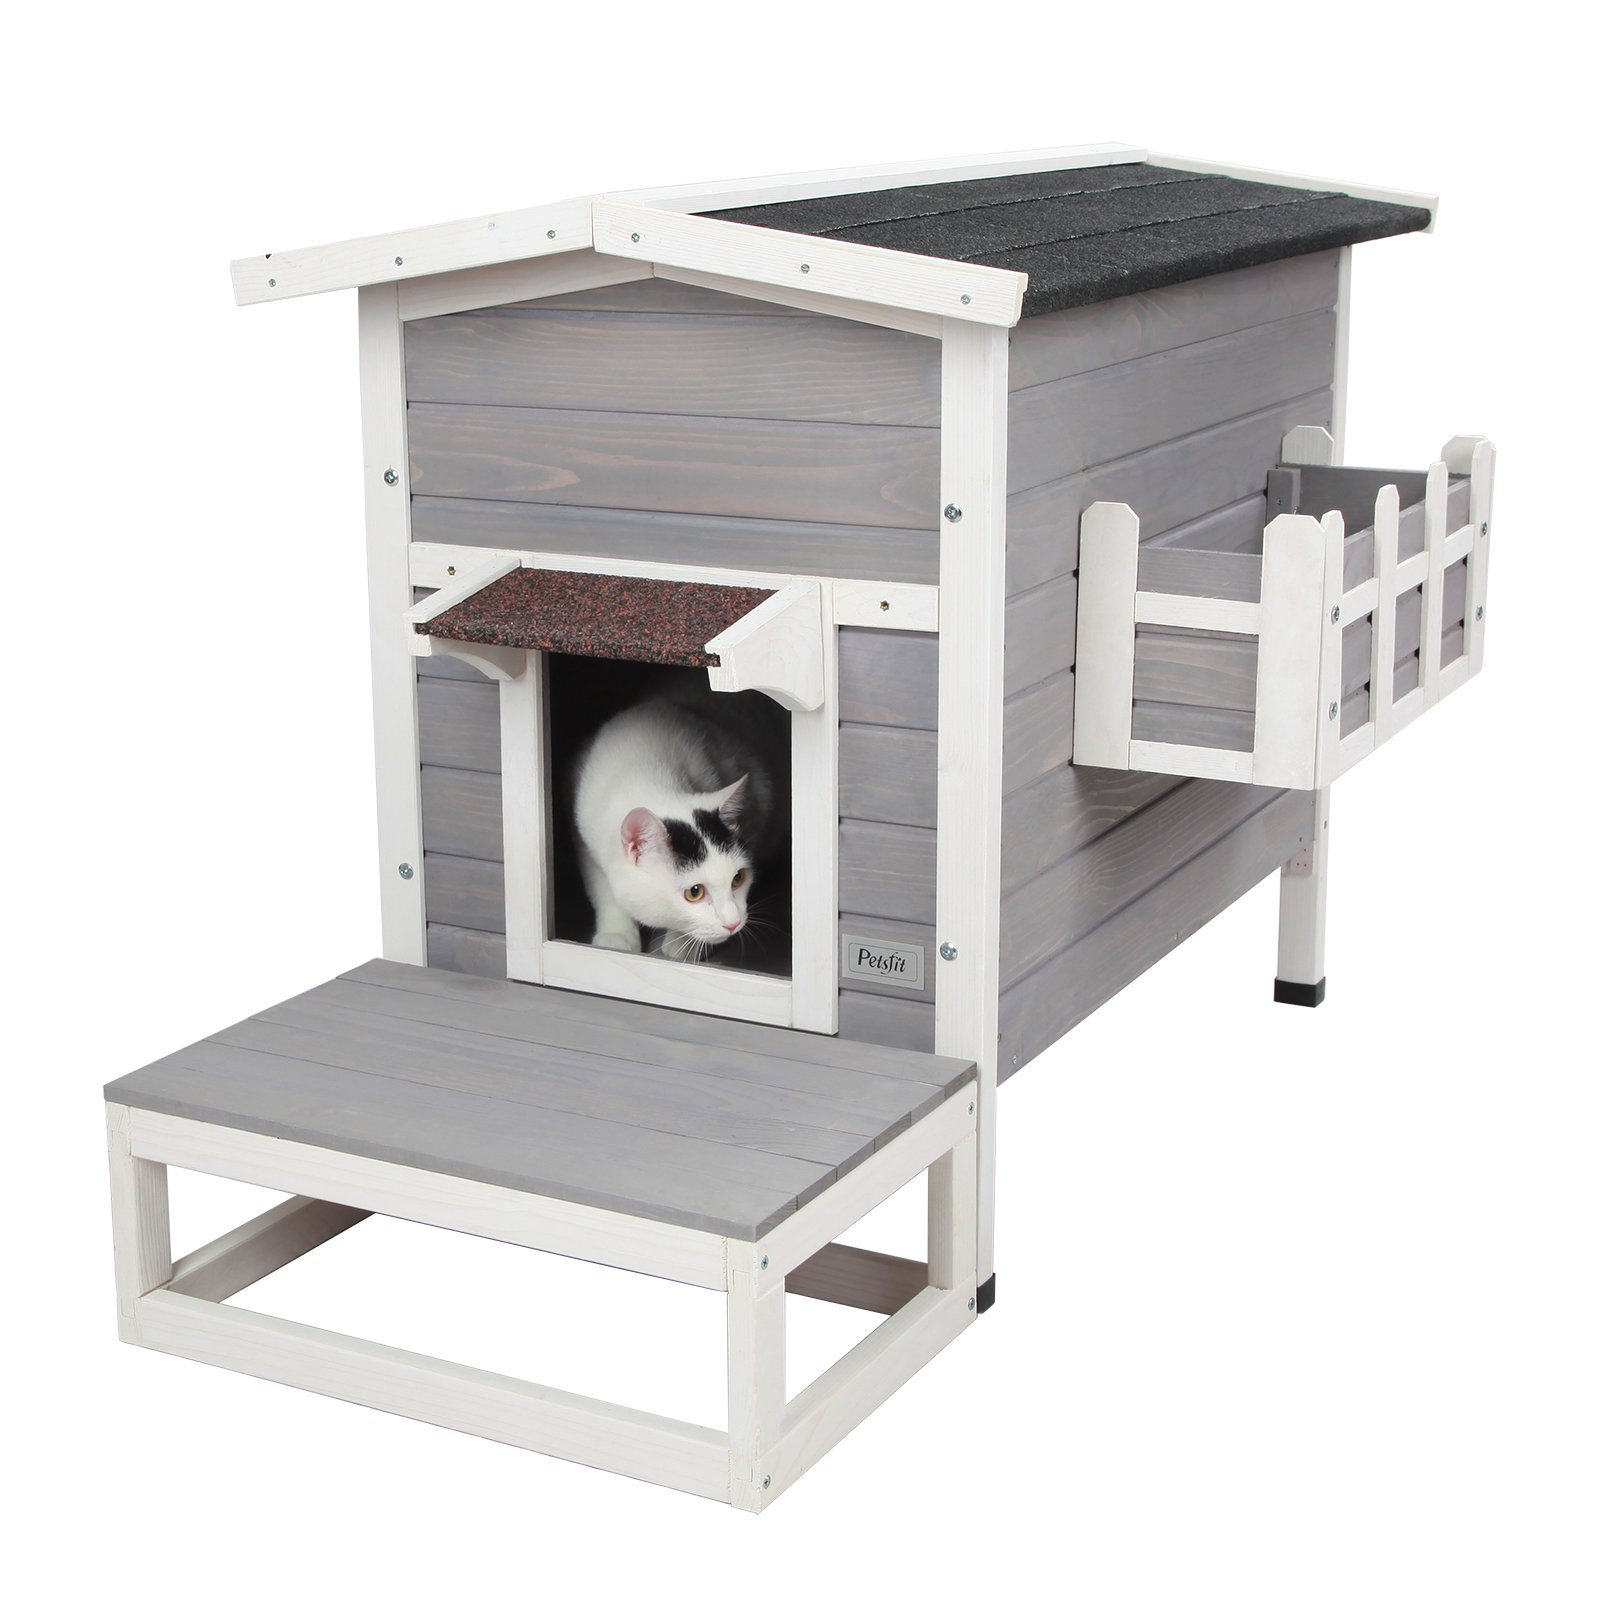 Petsfit Weatherproof Outdoor Cat Shelter/House/Condo with Stair by Petsfit